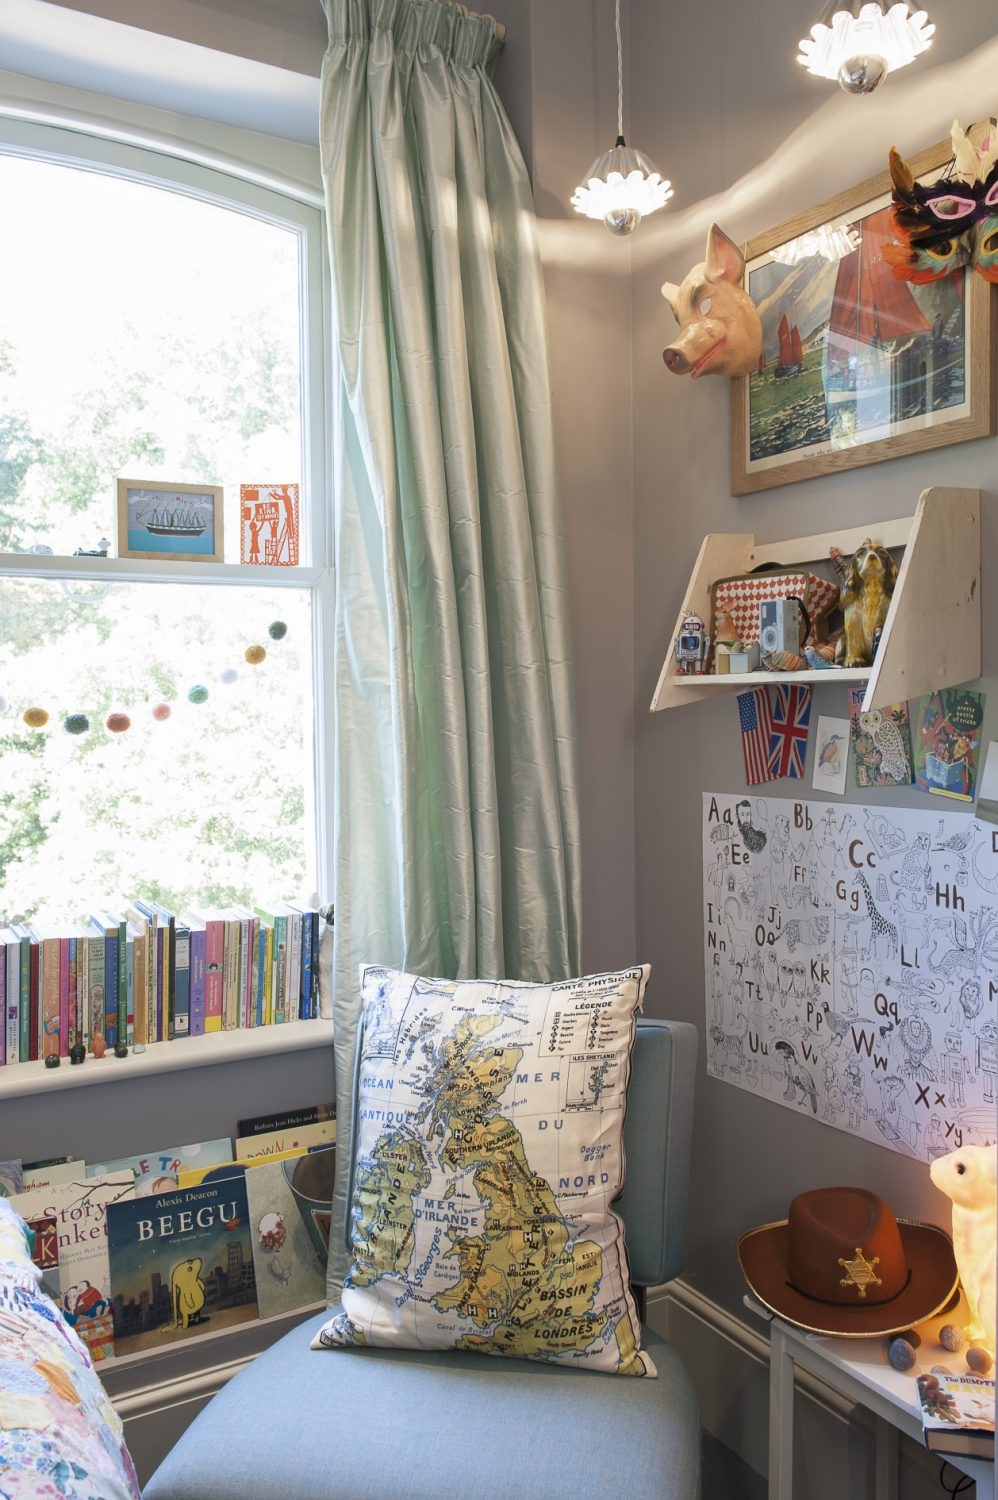 The couple's children have obviously inherited their parents' love of books and graphic art, too, because they all give books pride of place. In their youngest daughter's room there is a little sea green bedroom chair with a silk cushion featuring a map of the British Isles, and a table with a milky white rabbit nightlight to banish the dark.